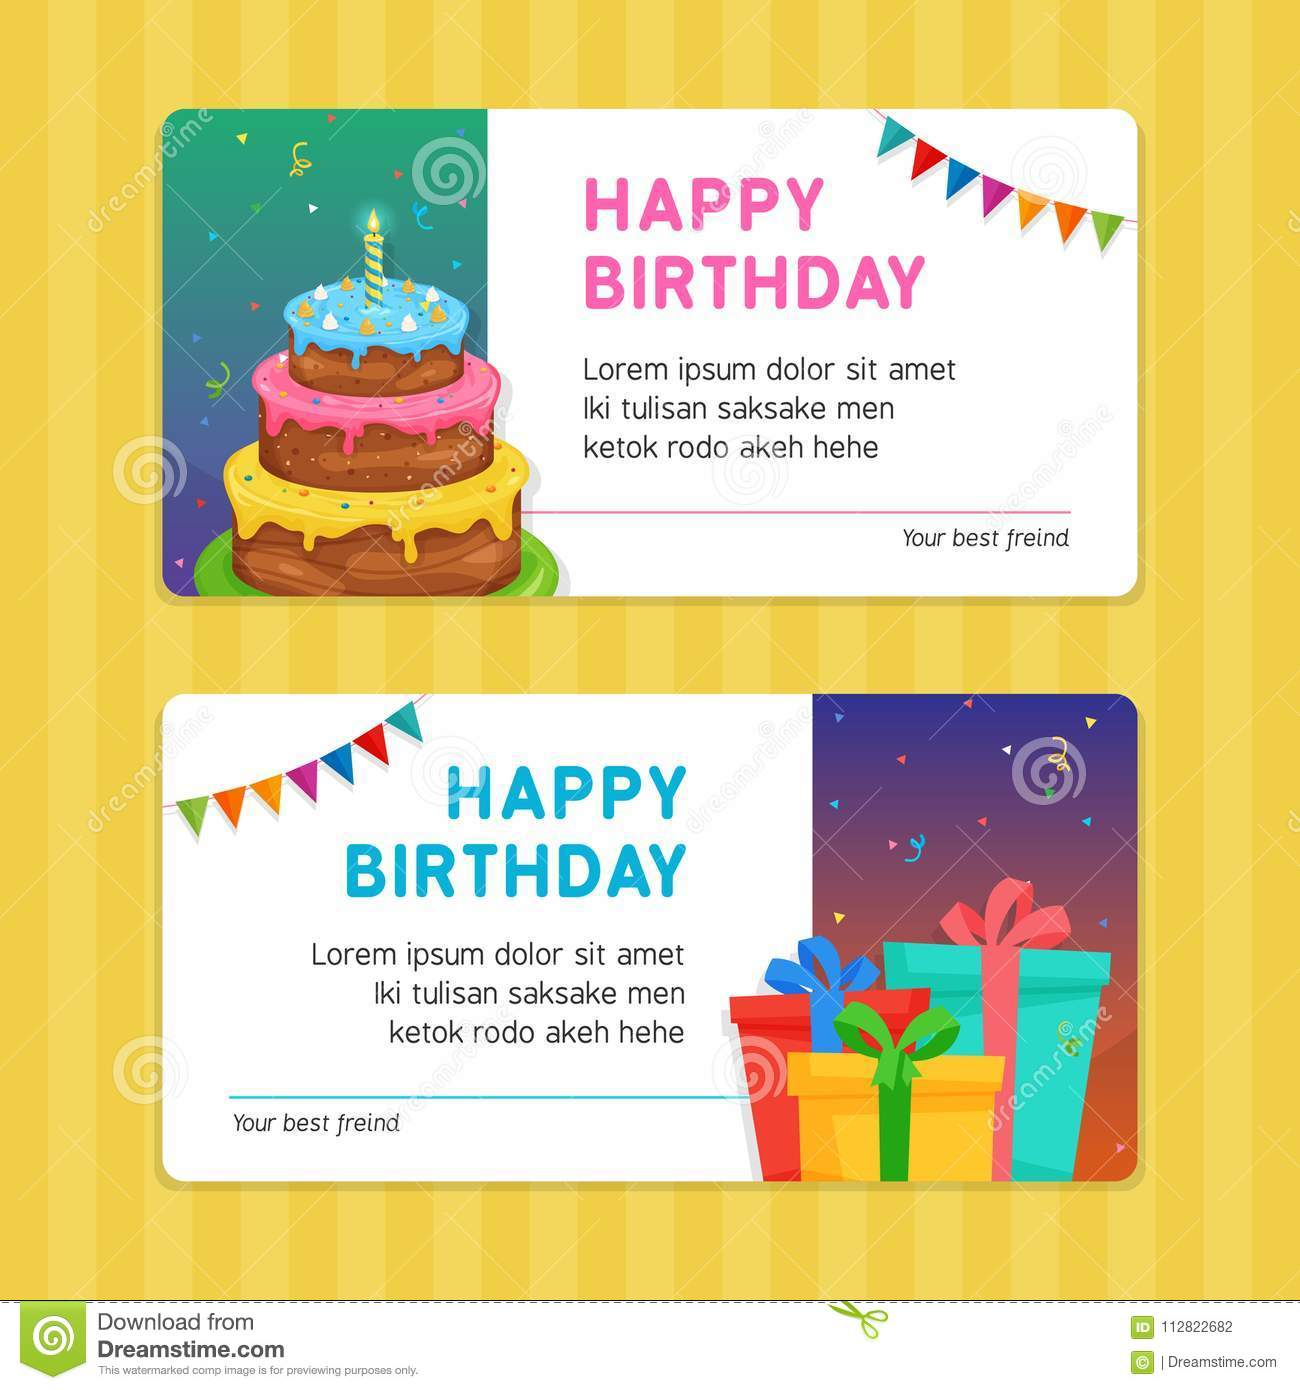 Happy Birthday Modern Invitation Card Template With Cake And Gift Box Illustration